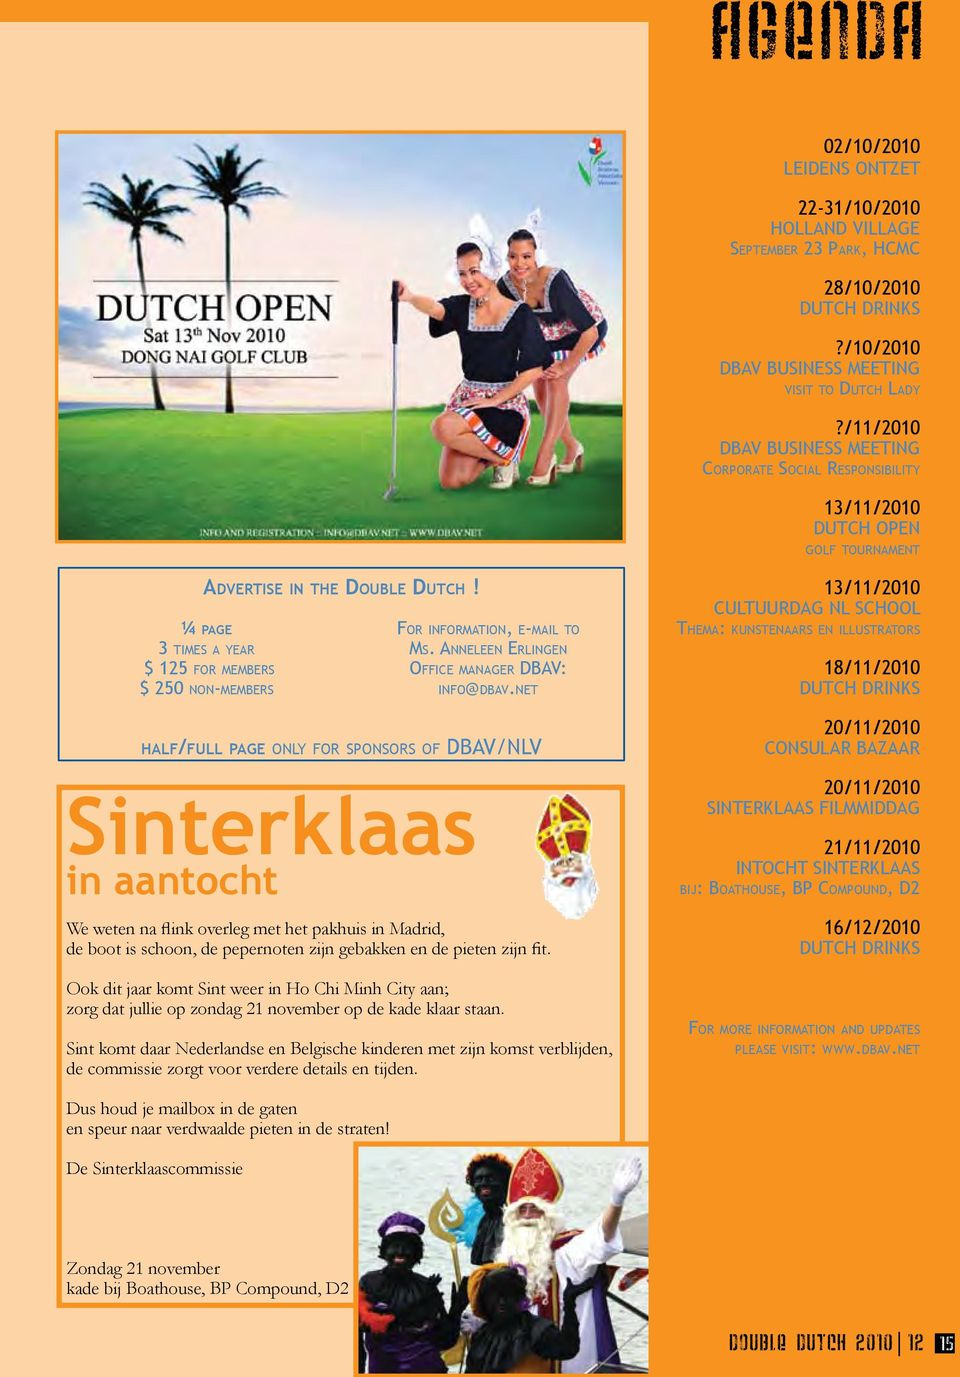 ¼ pa g e 3 t i m e s a y e a r $ 125 f o r m e m b e r s $ 250 n o n-m e m b e r s half/full page only for sponsors of DBAV/NLV Sinterklaas in aantocht For information, e-mail to Ms.